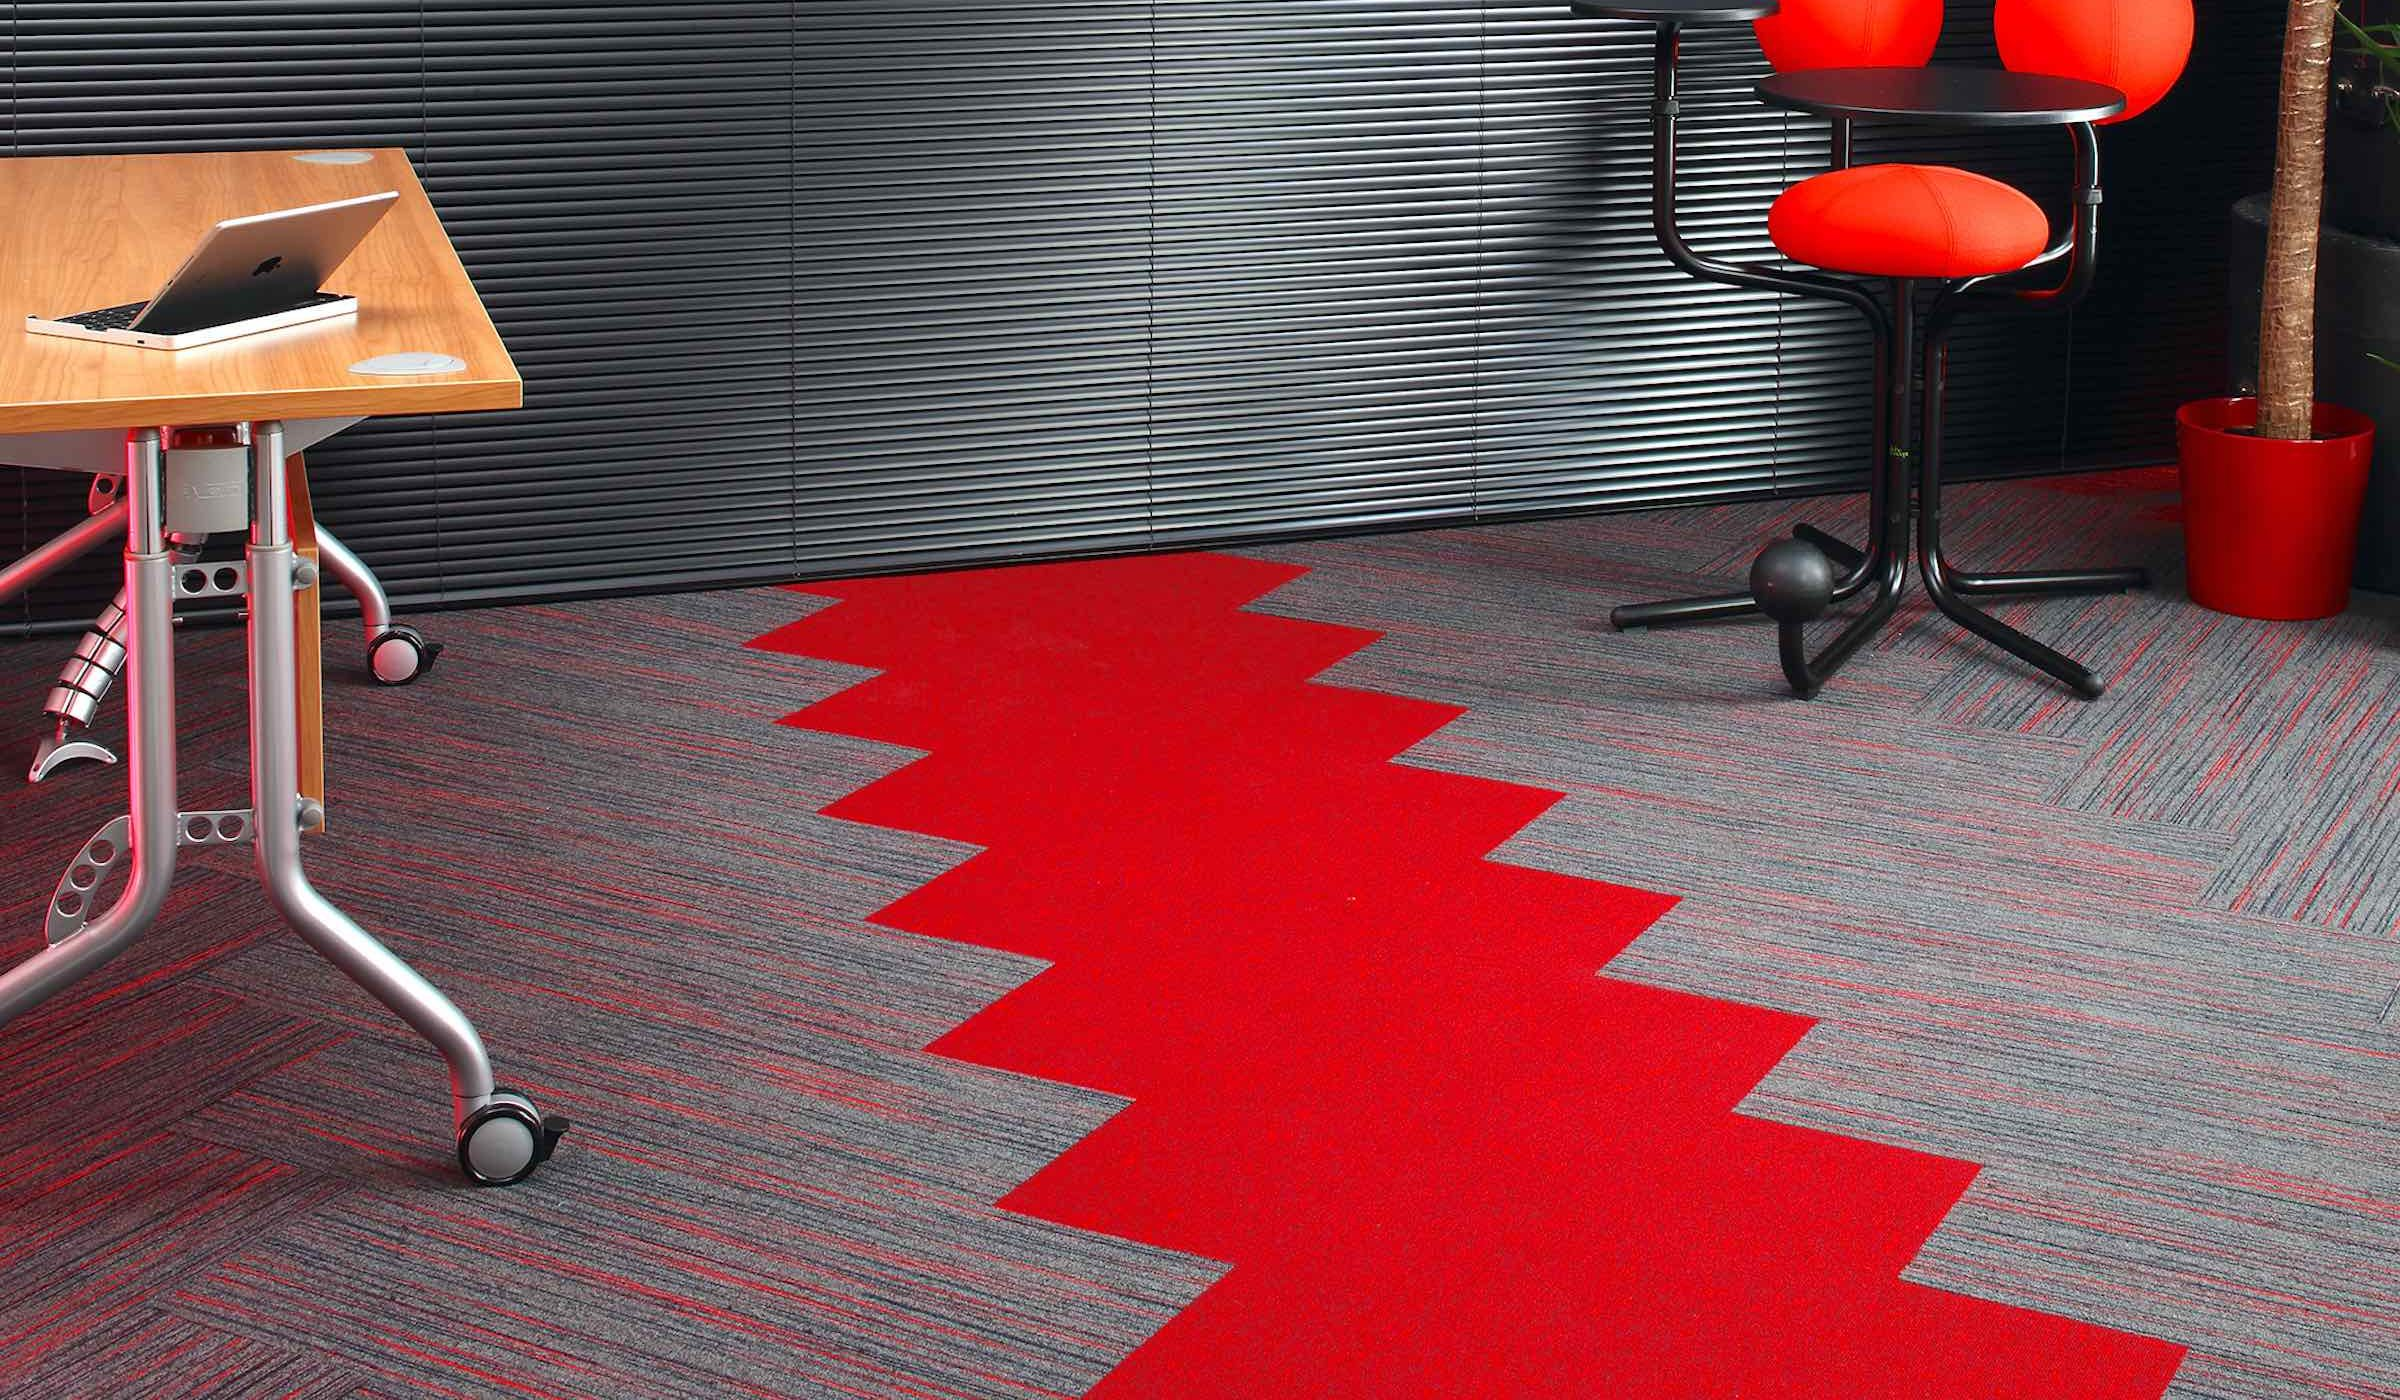 Design Dek | Paragon Carpet Tiles | Commercial Carpet Tiles | Design Carpet Tiles 5